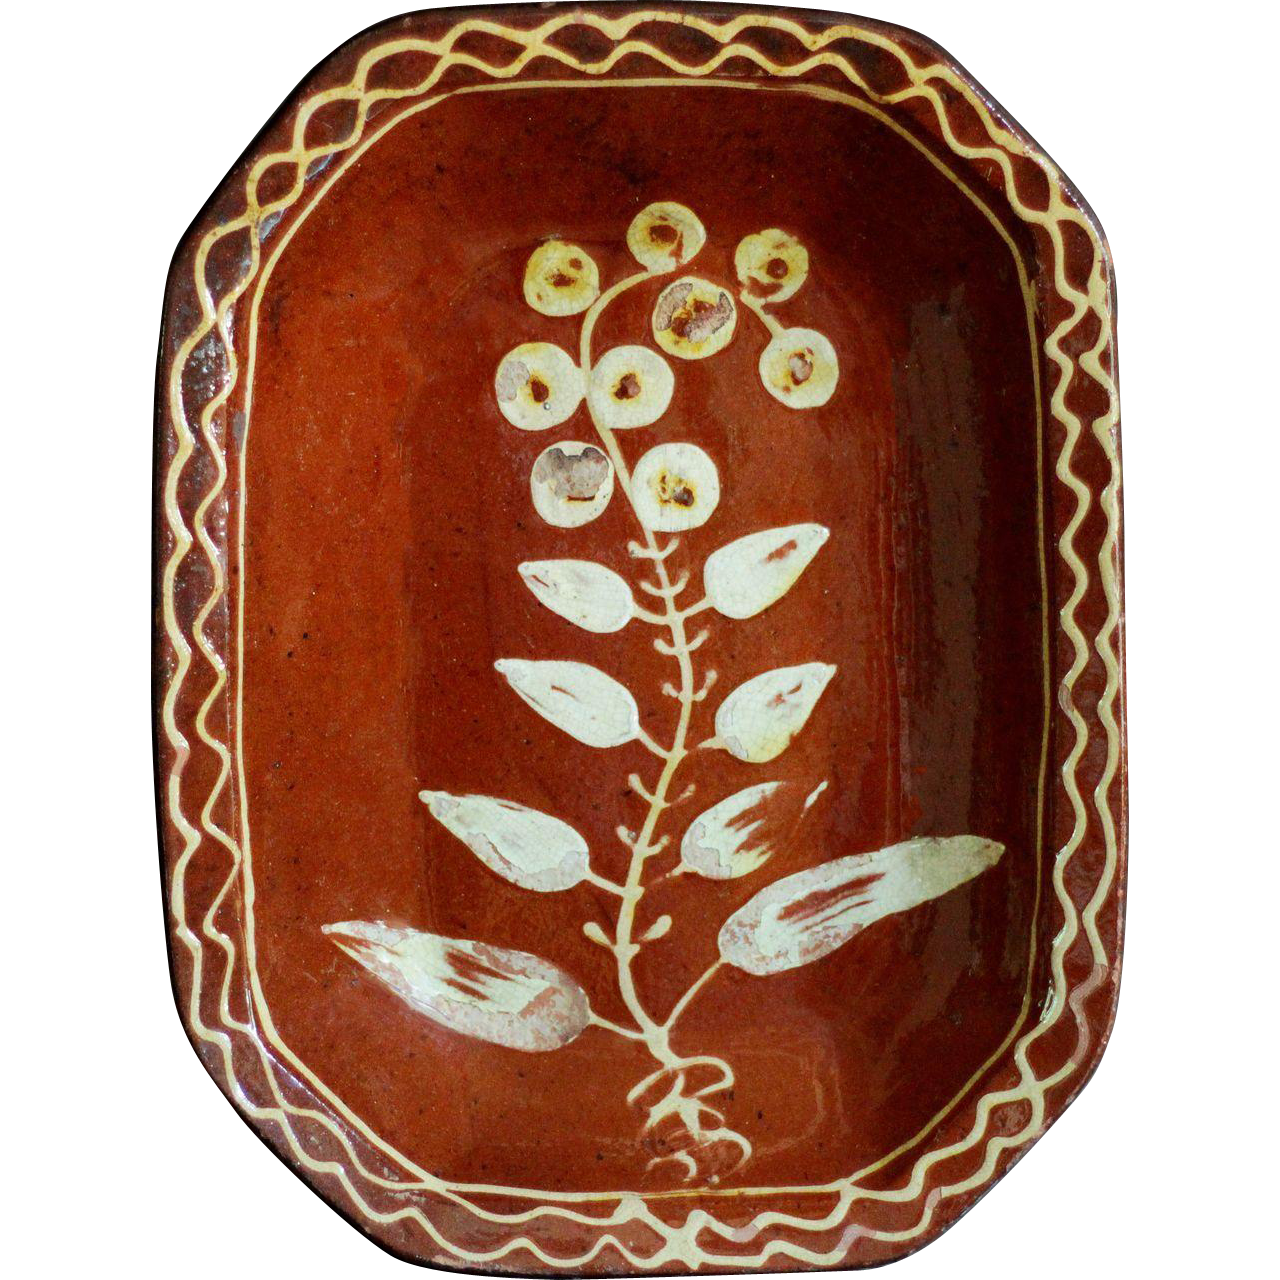 Antique English Slipware Earthenware Pie Baking Dish - 19th Century Redware Pottery